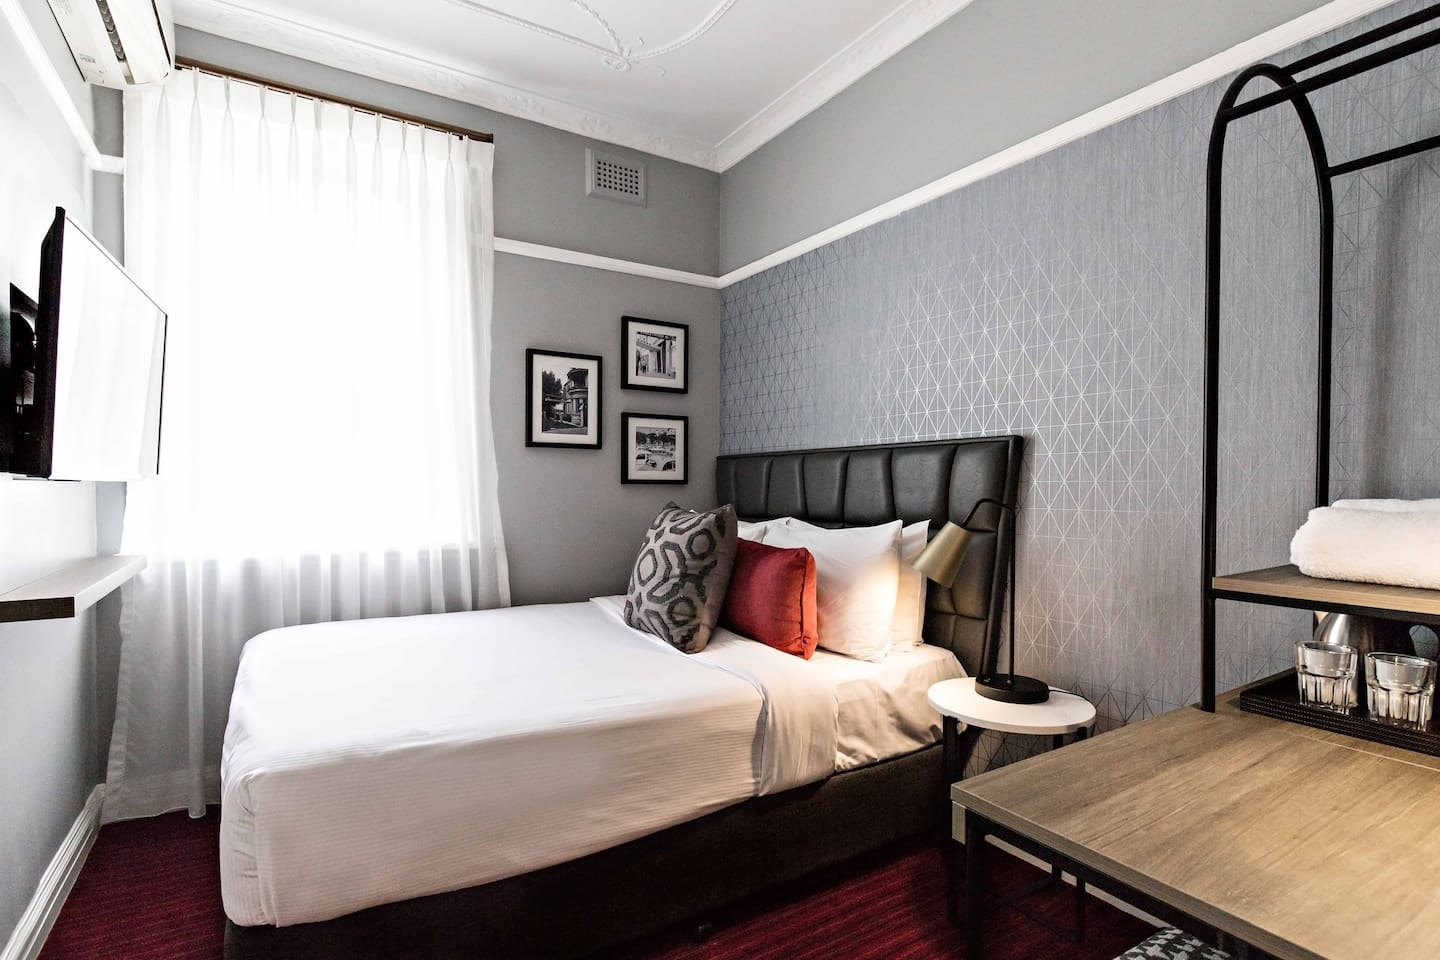 The Single Room is a comfortable option for one person.